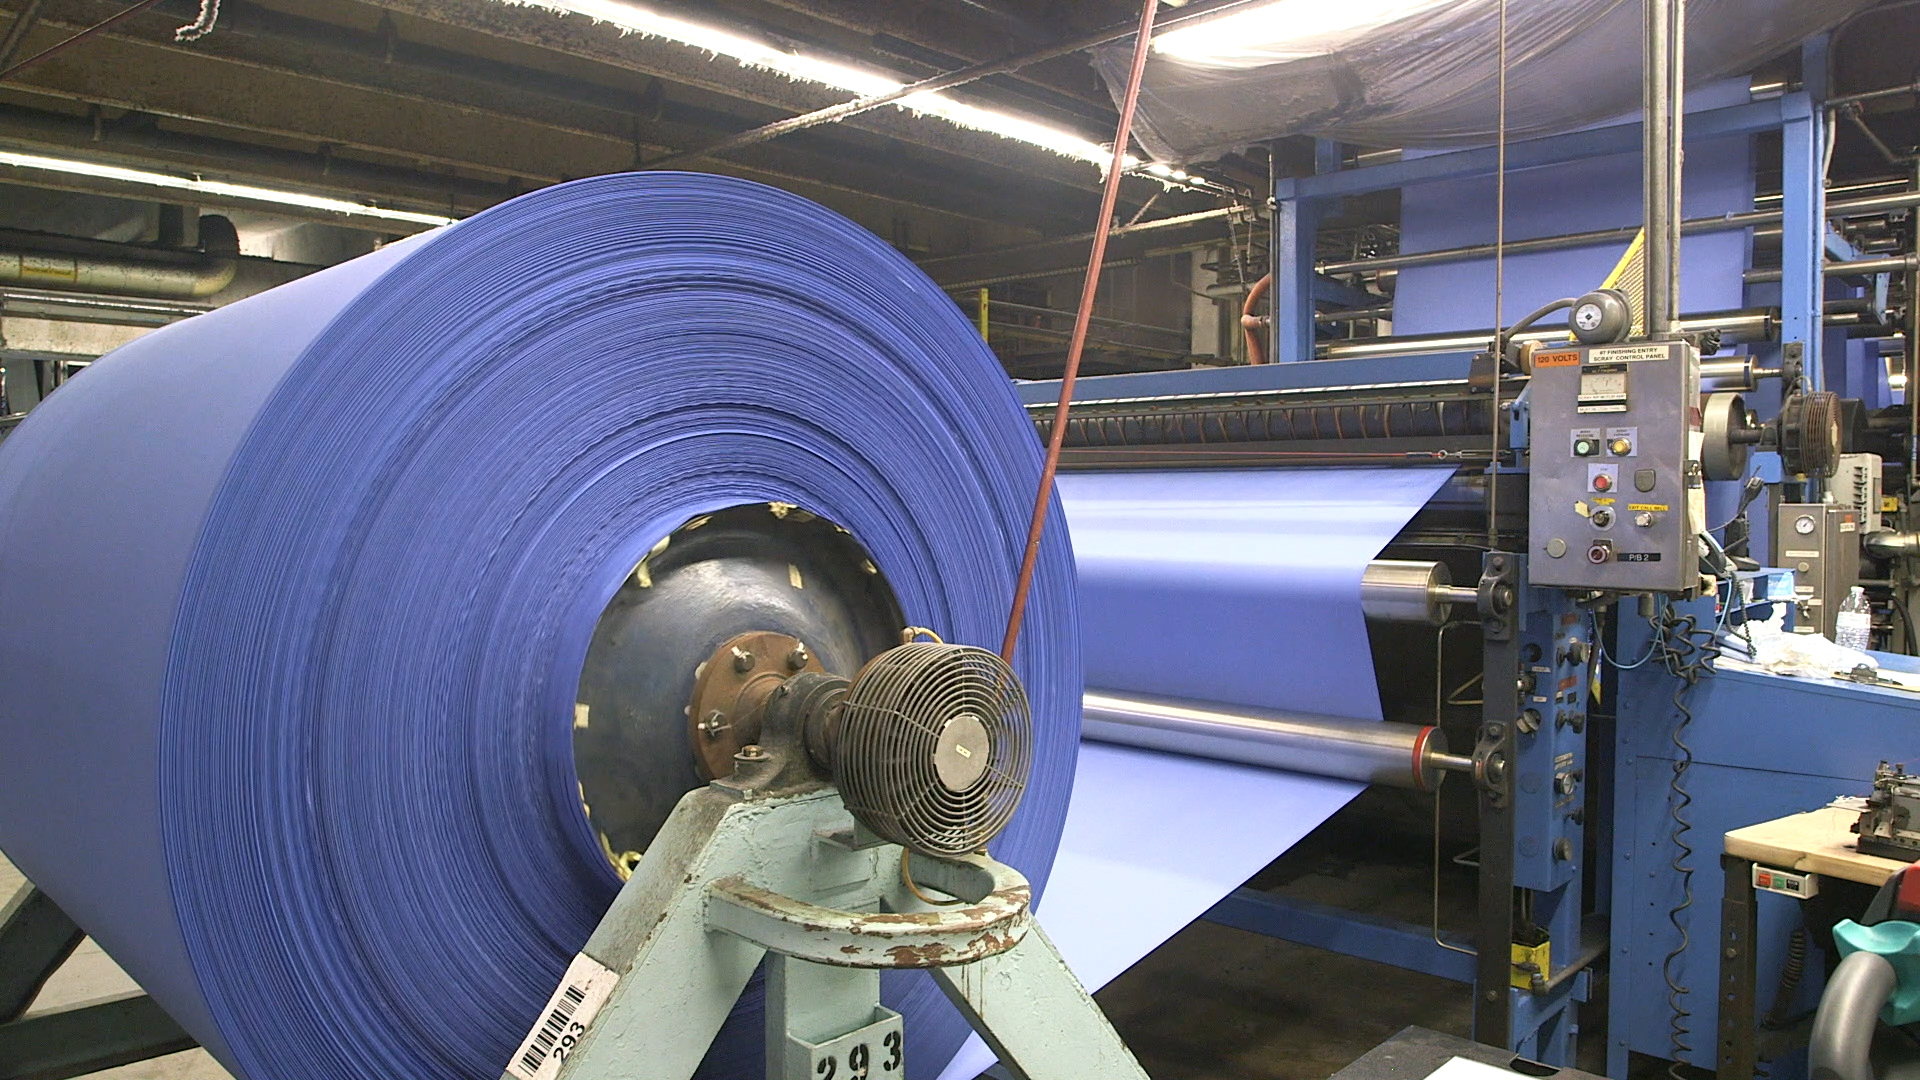 Production of Milliken's BioSmart fabric.